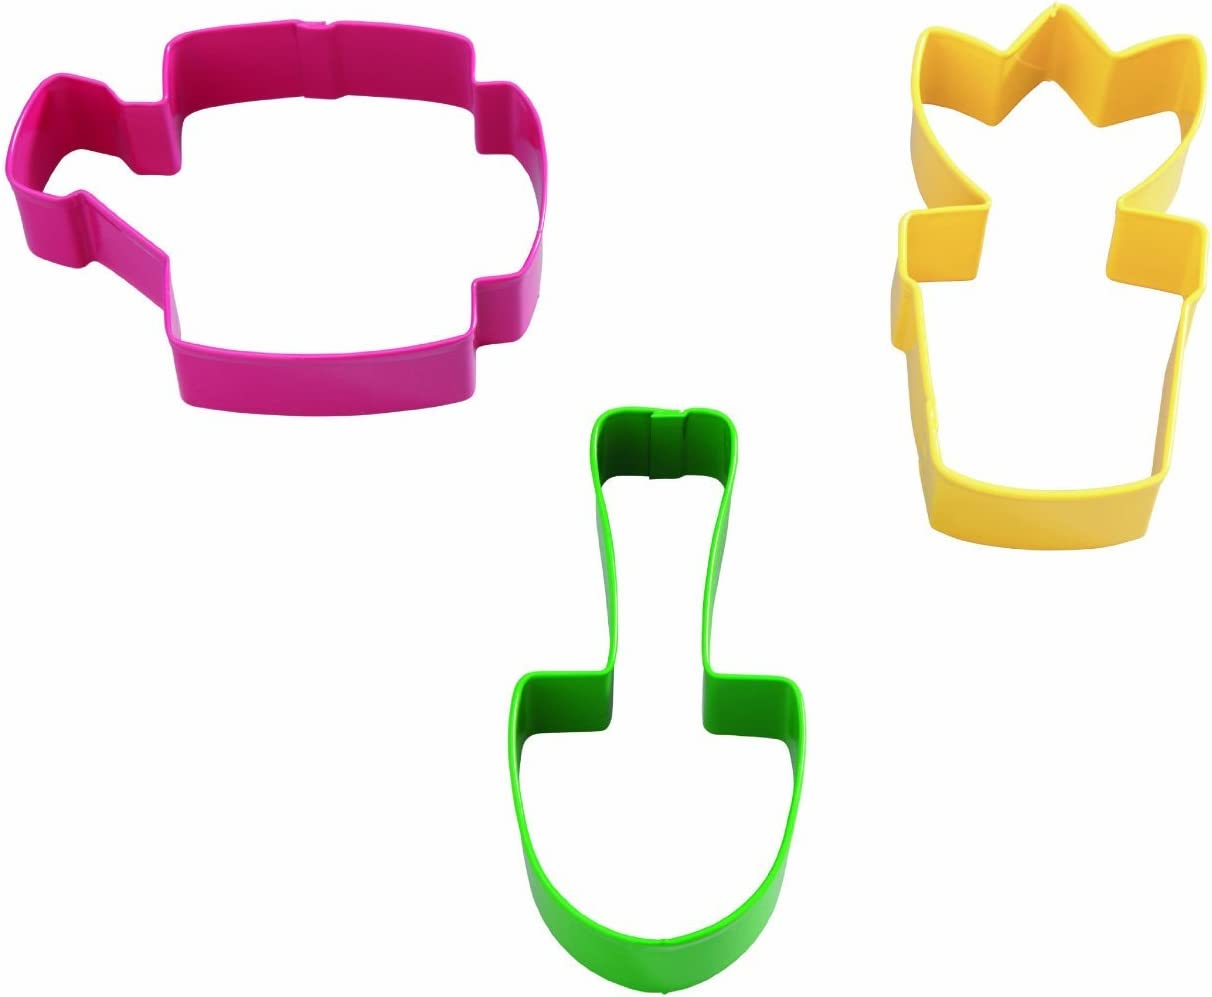 Wilton Garden Colored Metal Cutter Set, 3-Piece